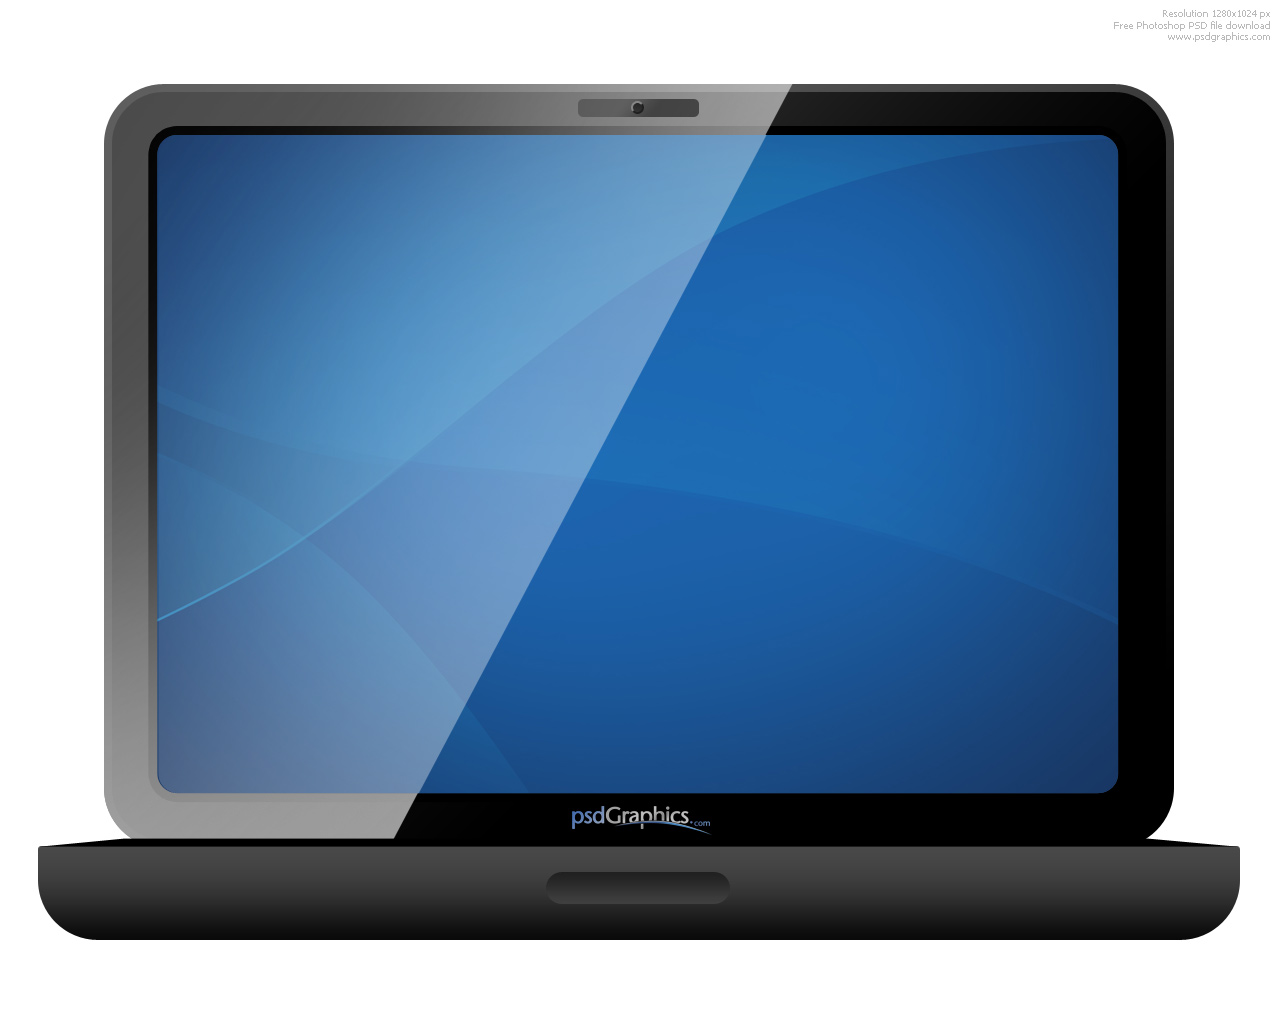 15 Laptop Screen Icon Images